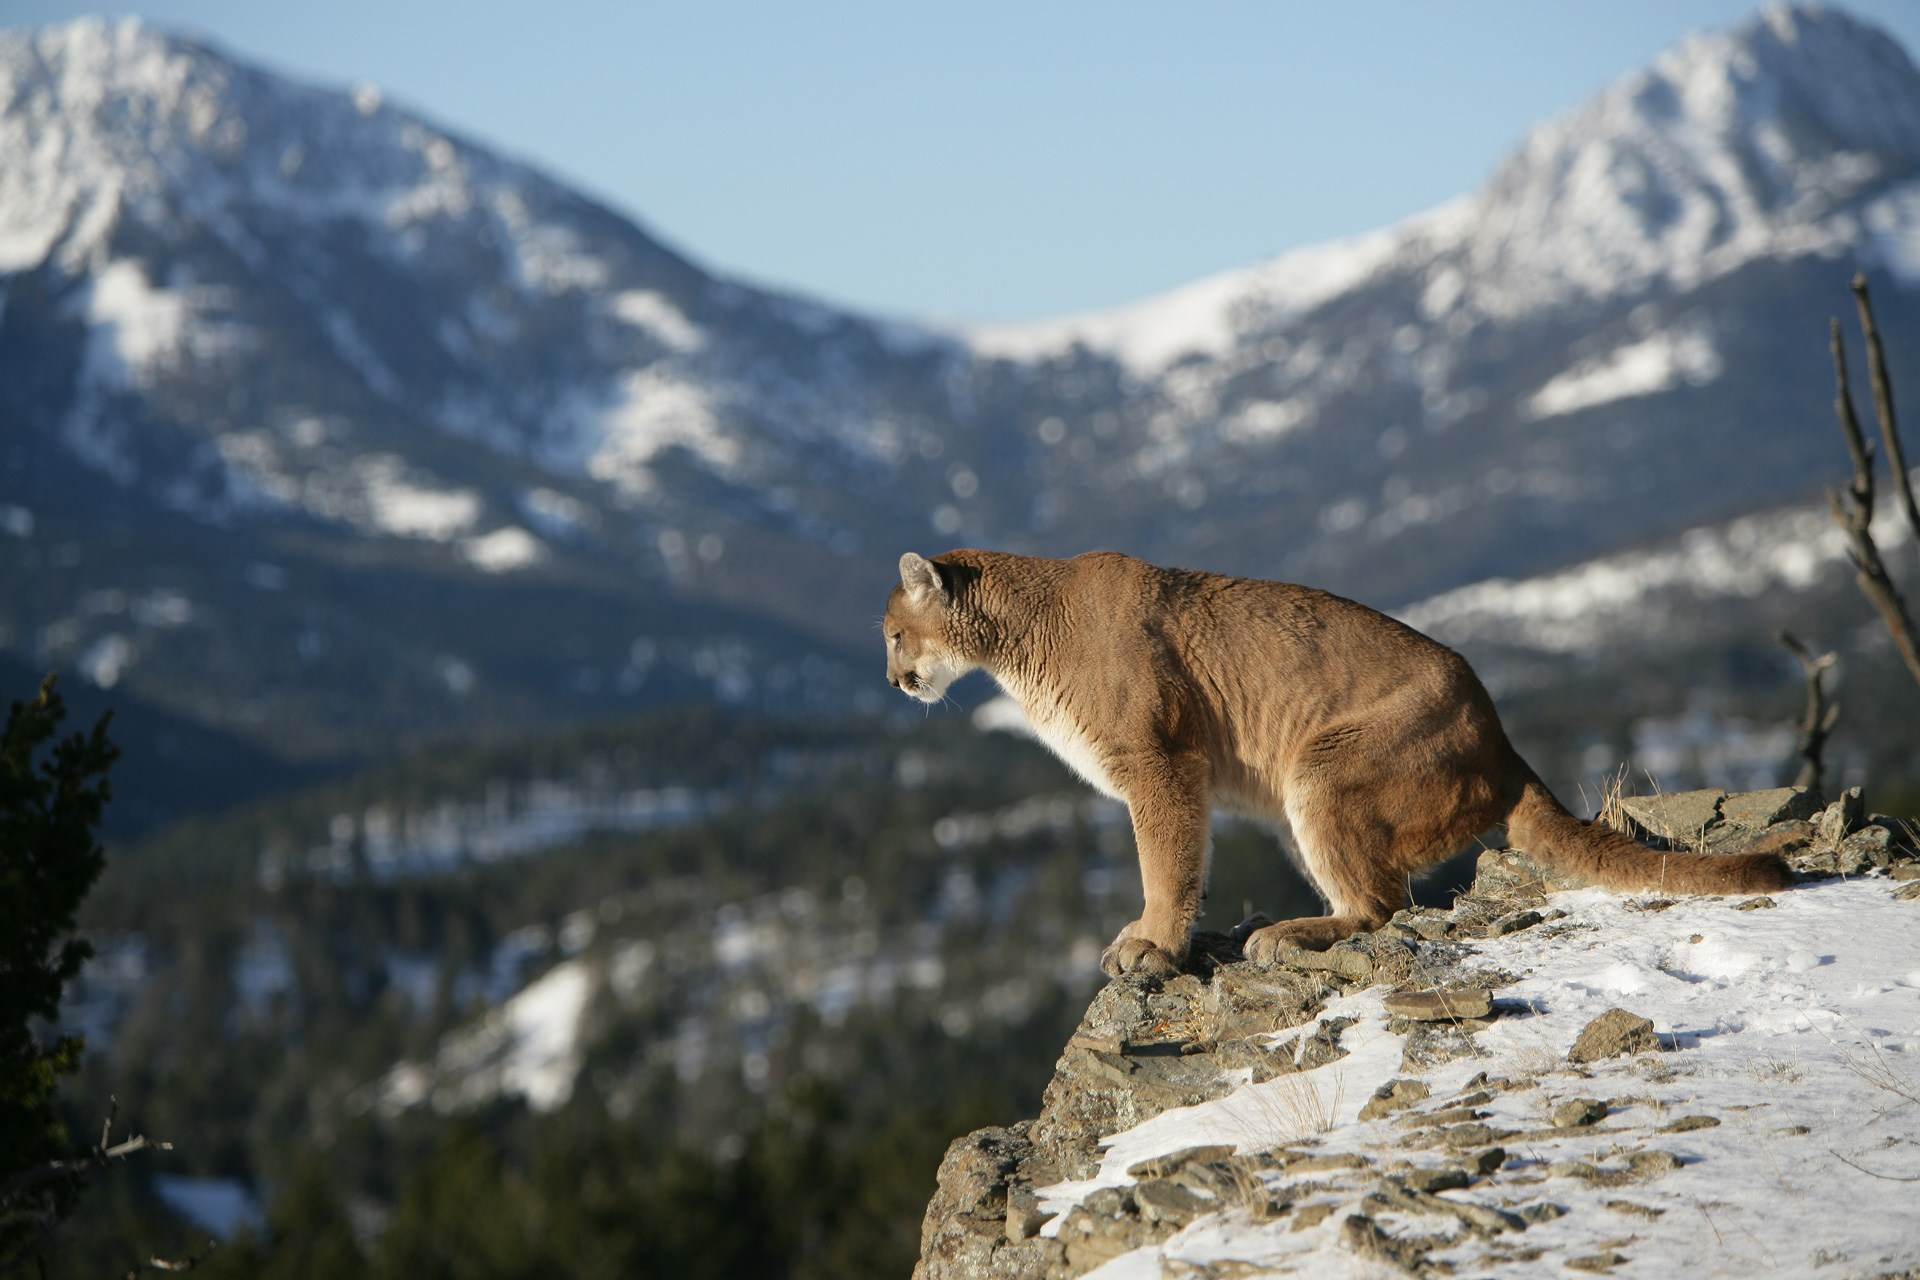 Mule deer and mountain lion hunts with. - Cat Track Outfitters Pictures of young mountain lions